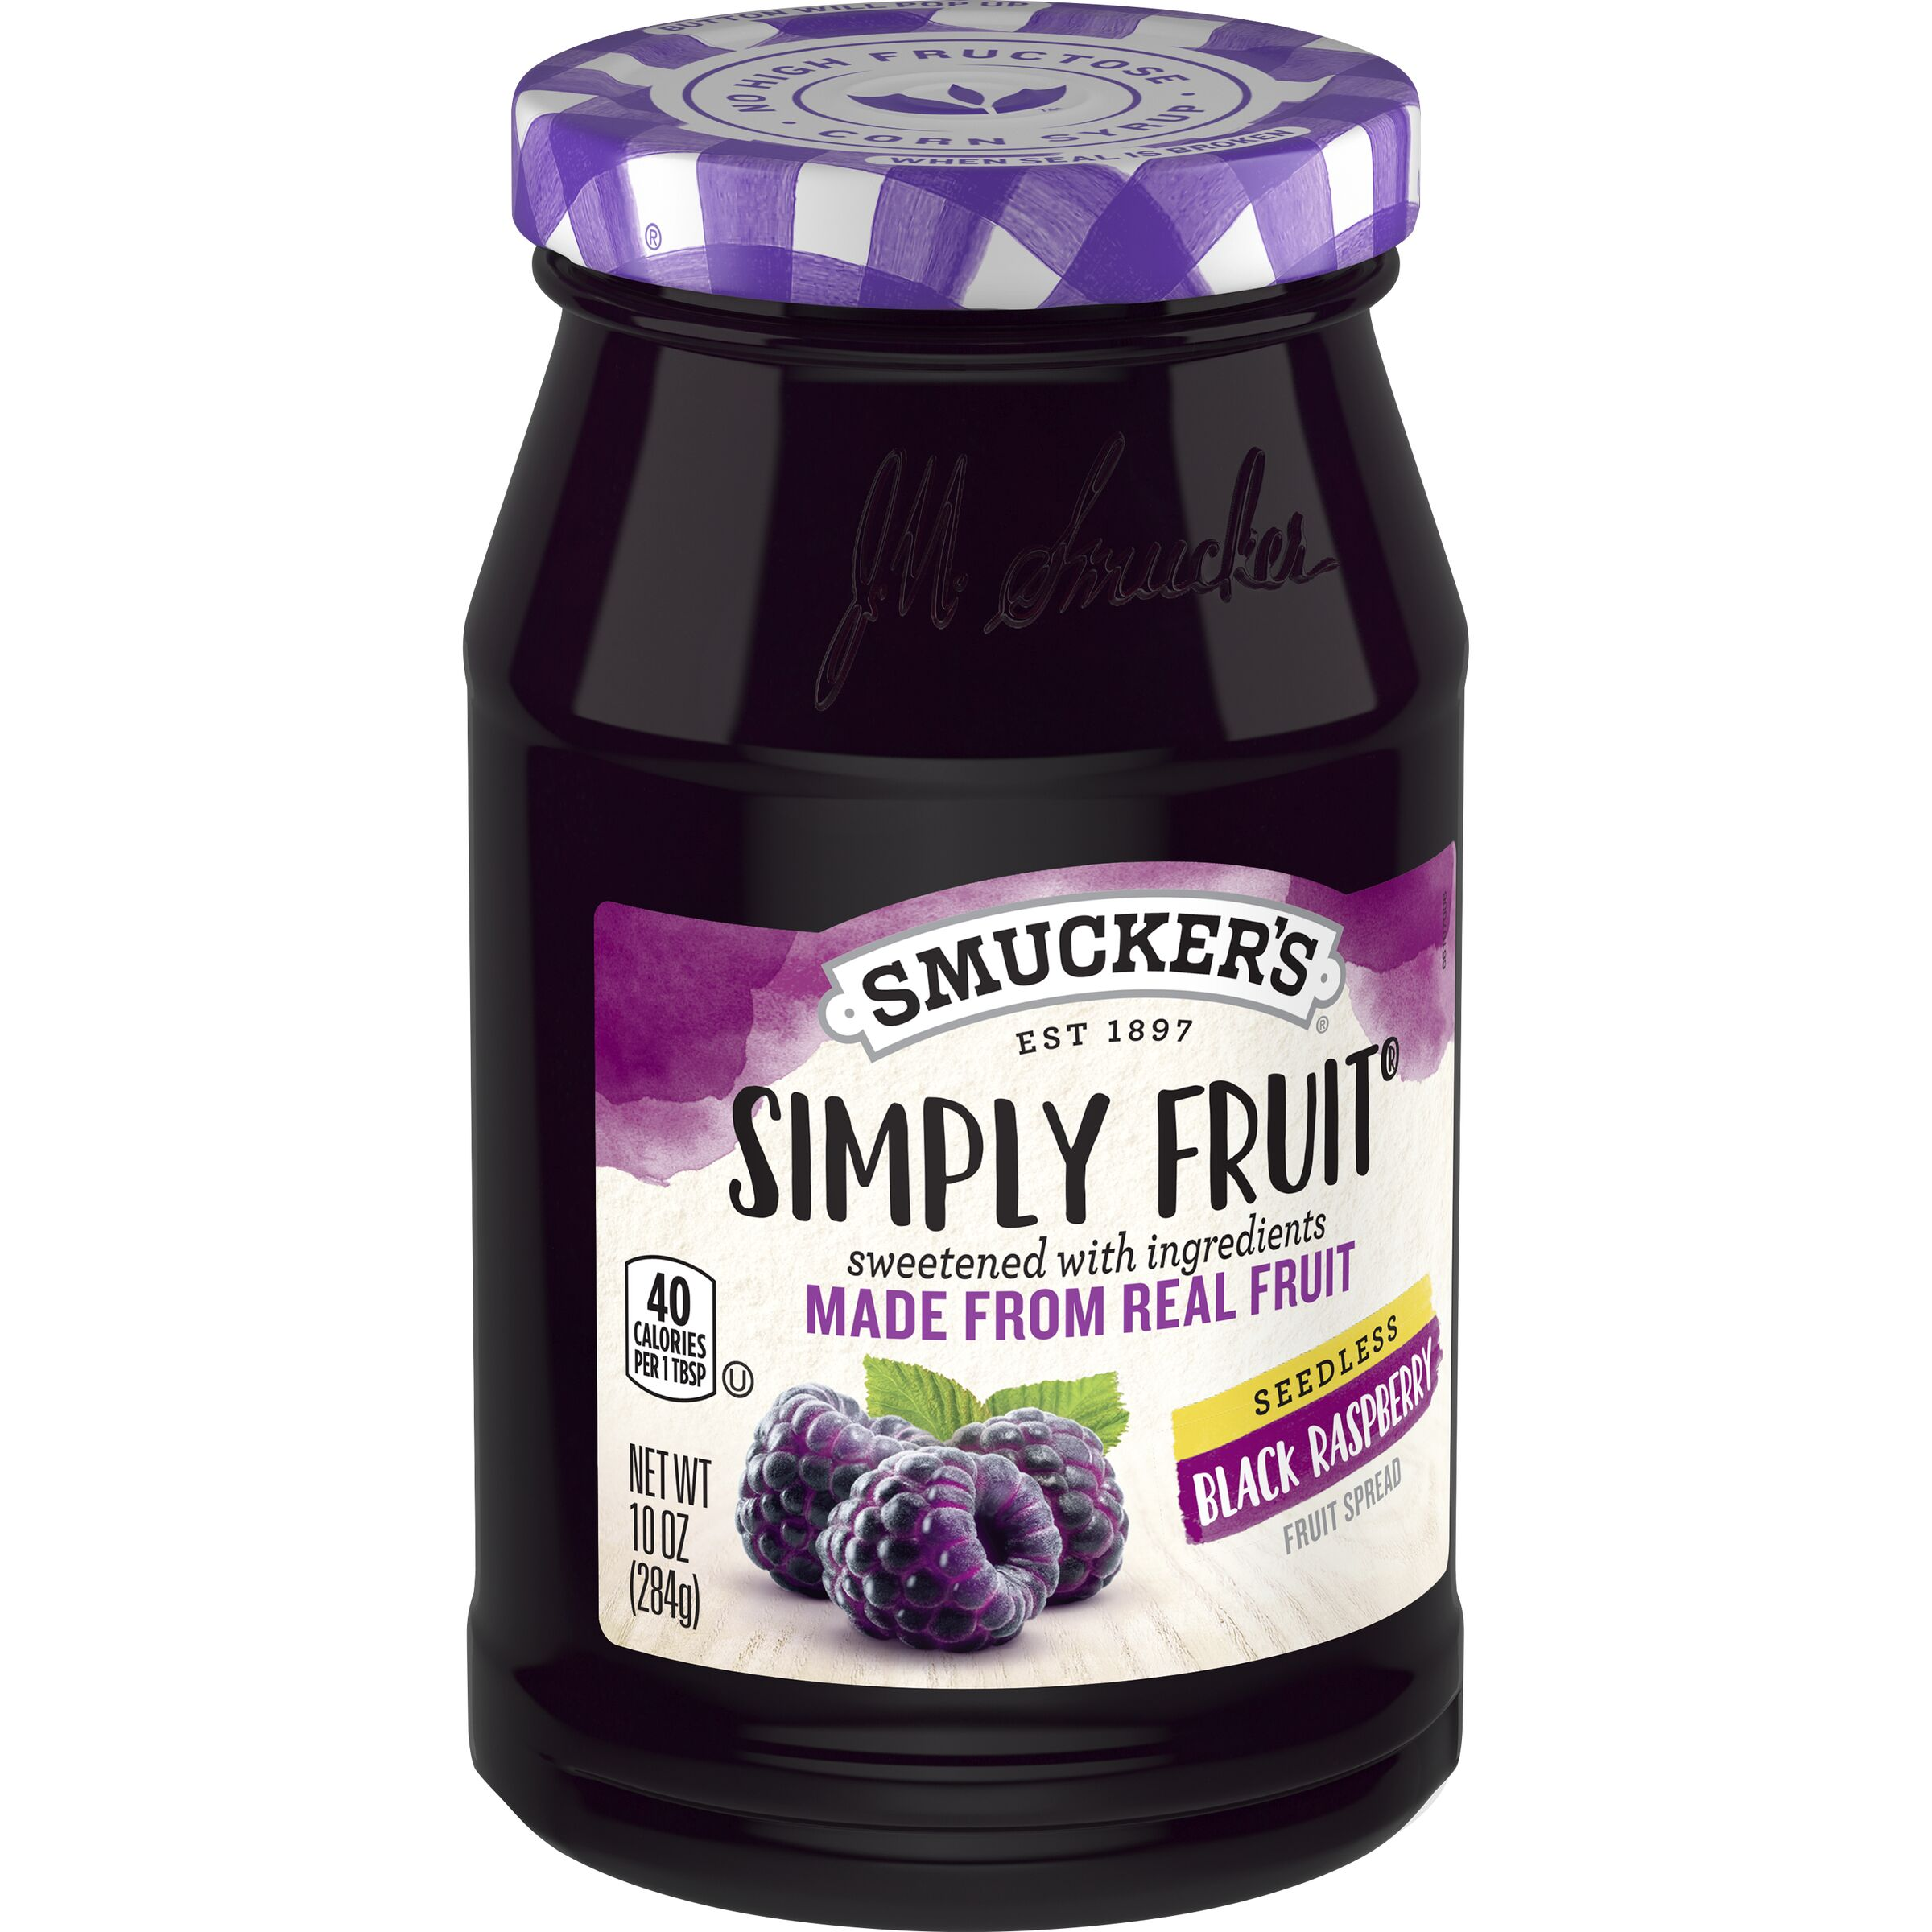 Smucker's Simply Fruit Seedless Black Raspberry Spreadable Fruit